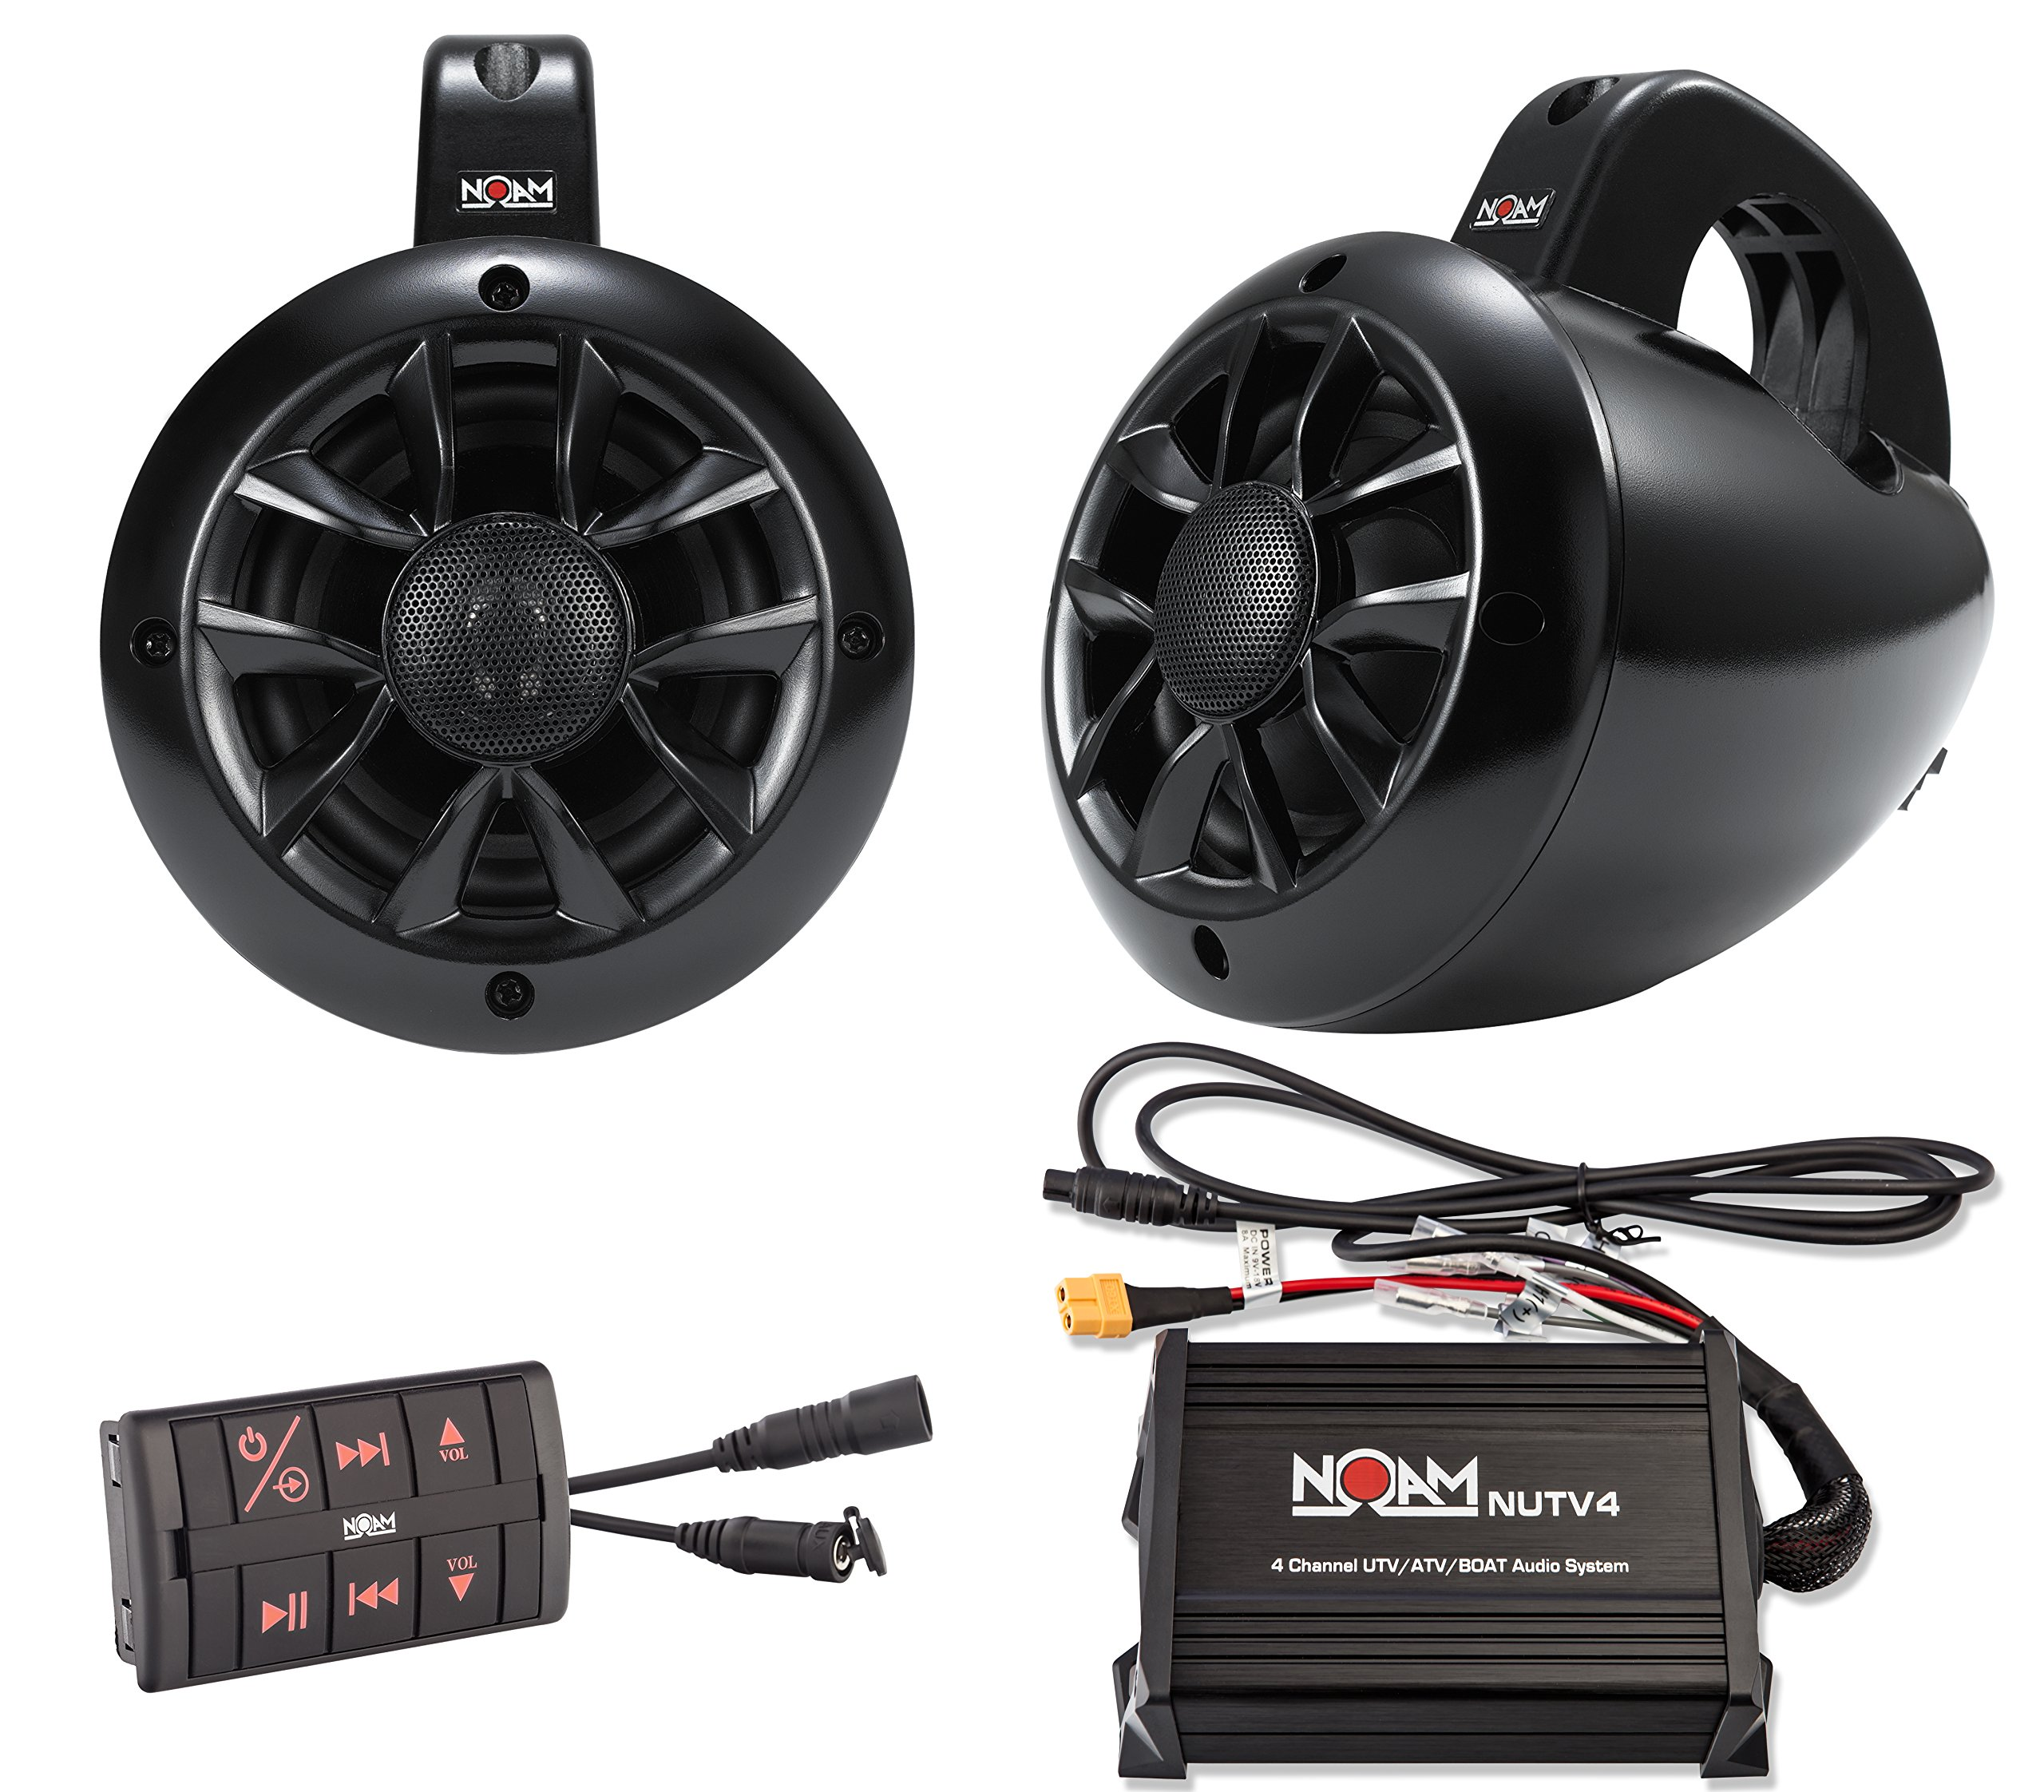 NOAM NUTV4 - Marine Bluetooth ATV / Golf Cart / UTV Speakers Stereo System by NOAM